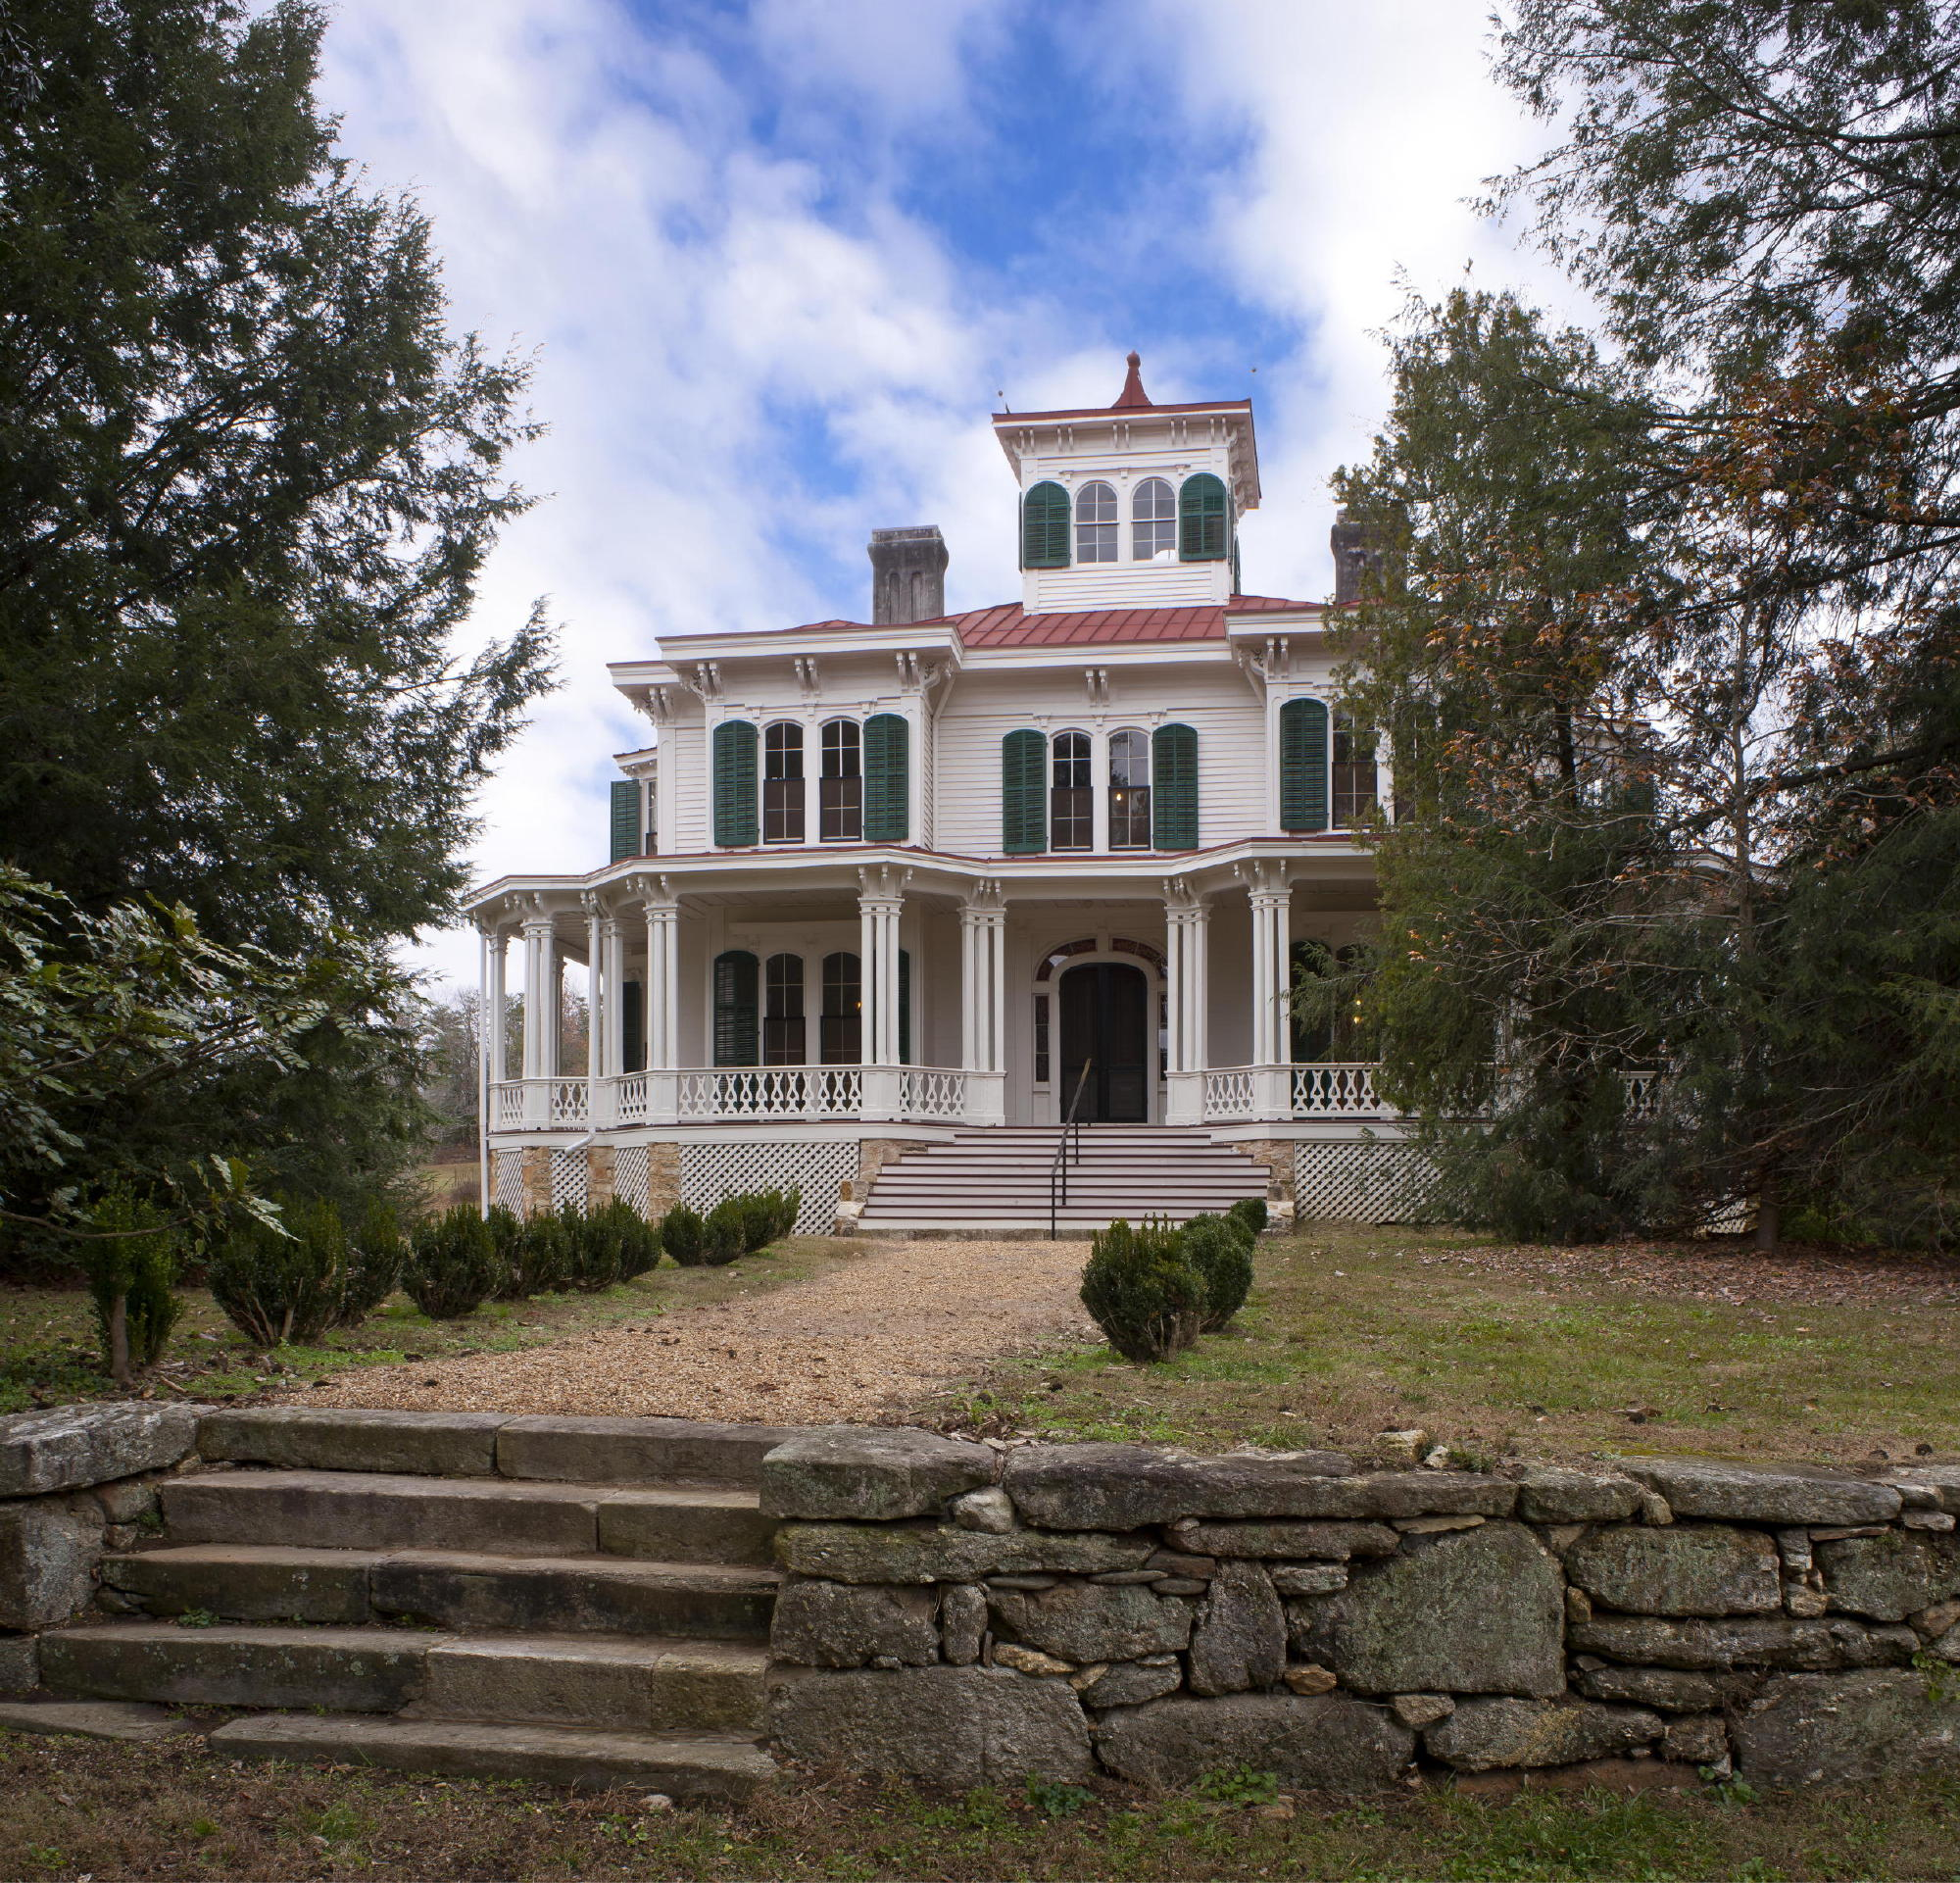 Georgian Farmhouse Design Historic Preservation Approach Characterizes 19th Century